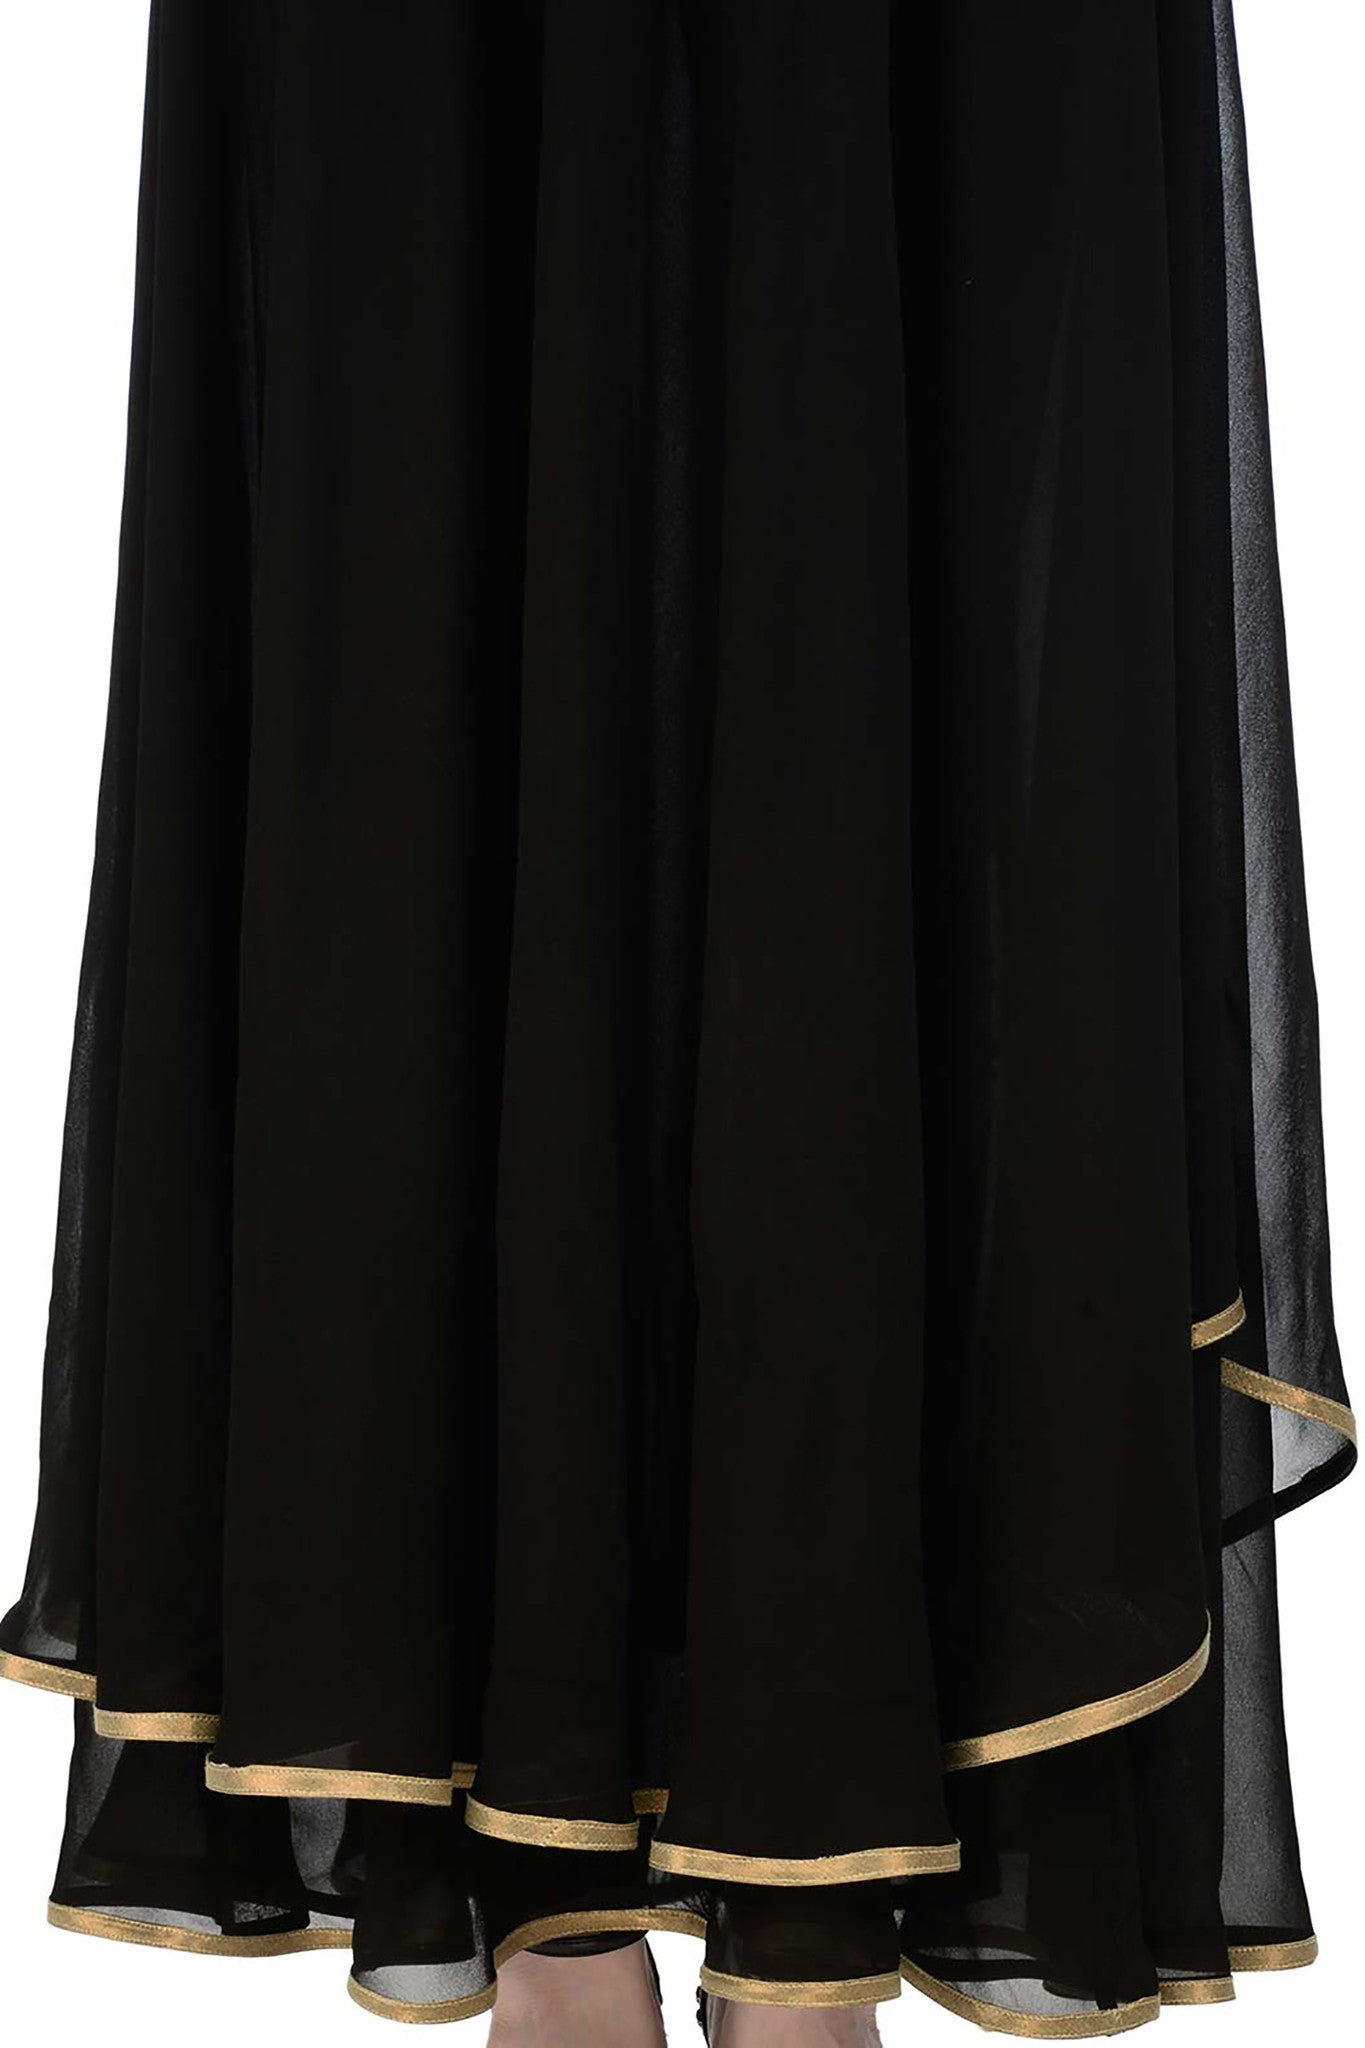 Black Anarkali with Gold Bird Motifs Skirt